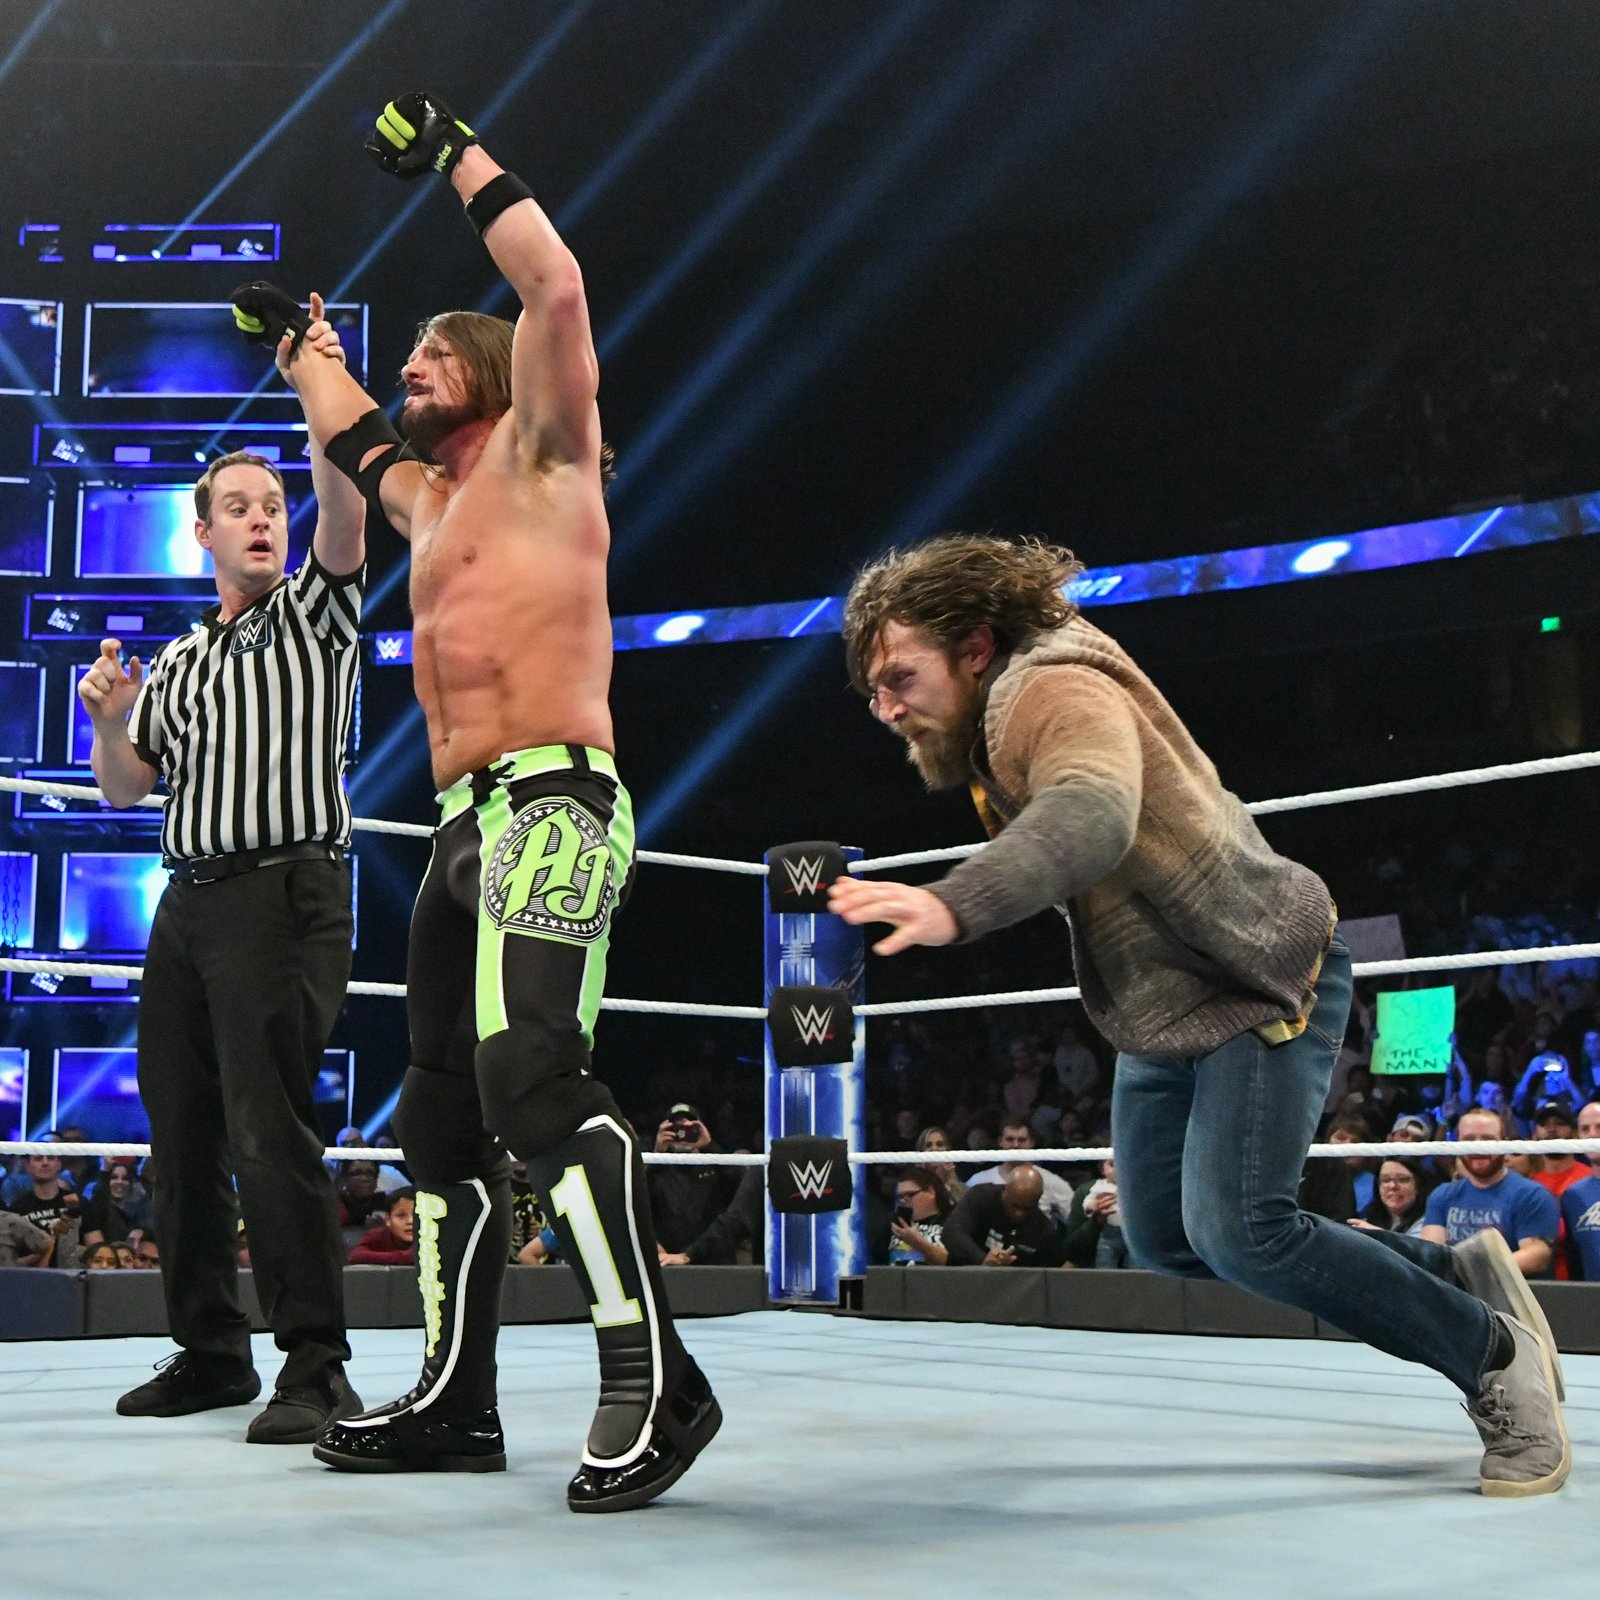 Bryan attacks Styles after the bout...